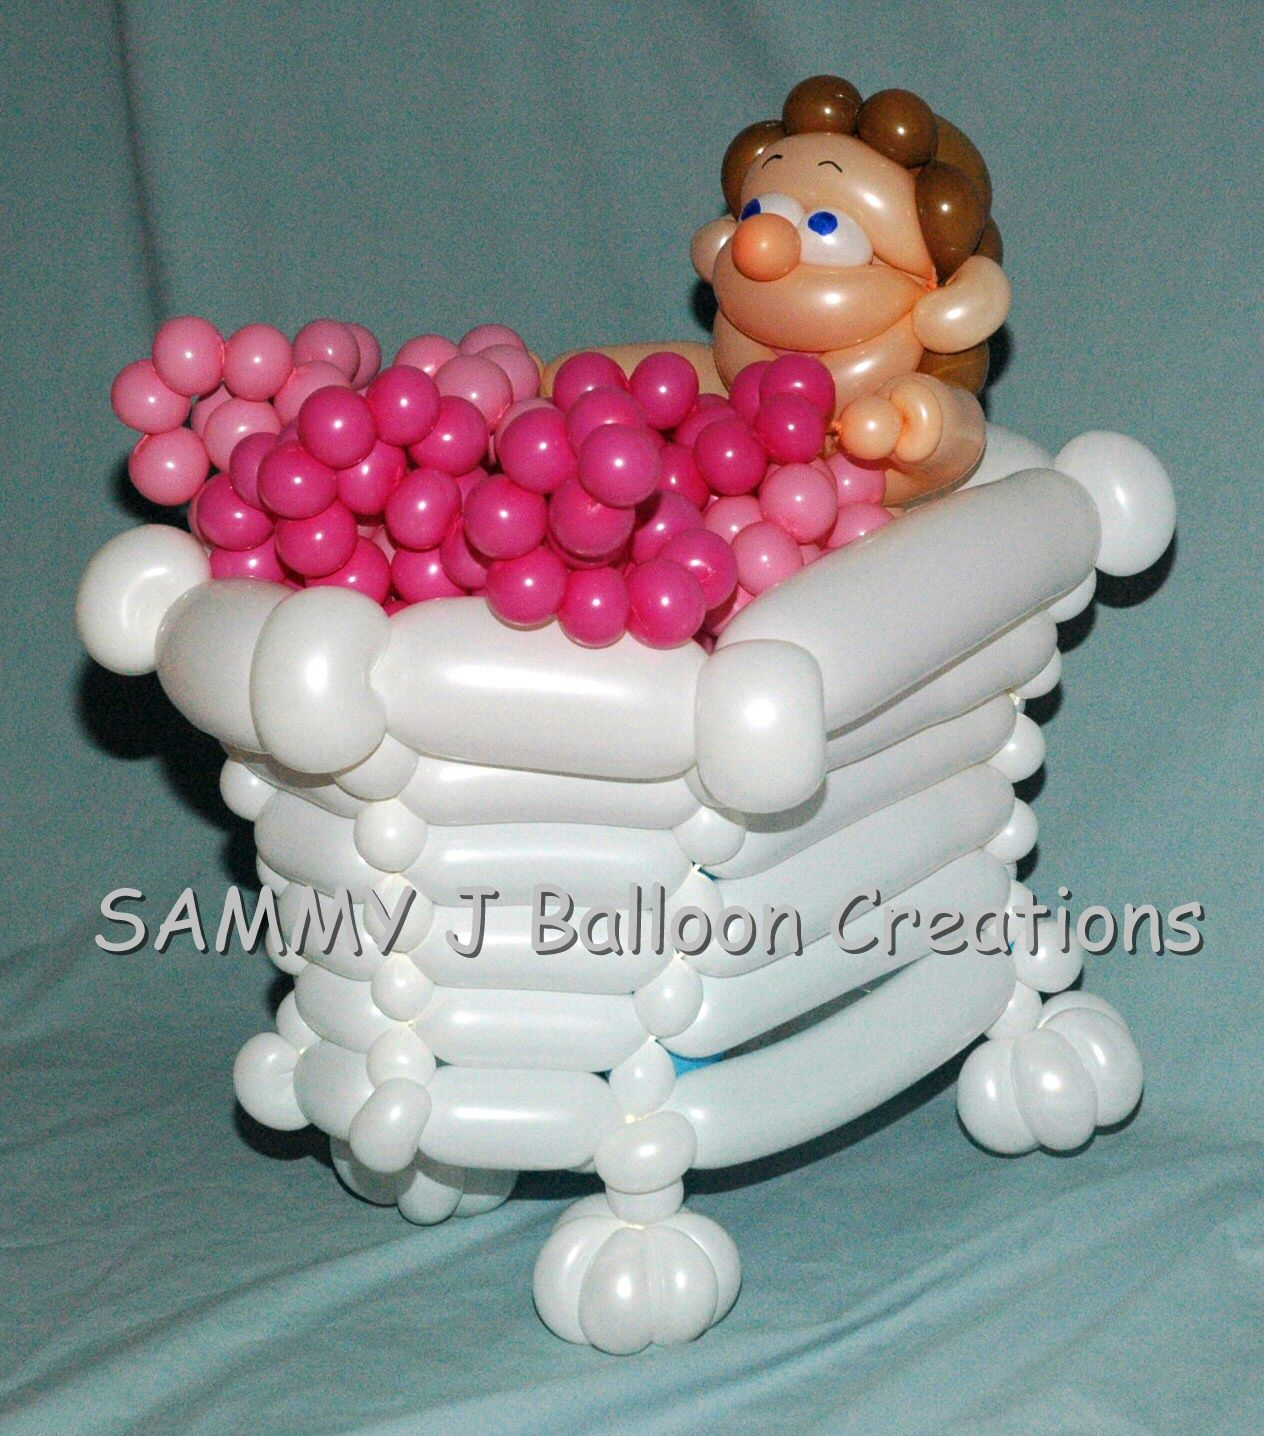 Time for a relaxing bubble bath. From a husband to a wife with a gift certificate for a spa weekend.       http://sammyjballoons.com/